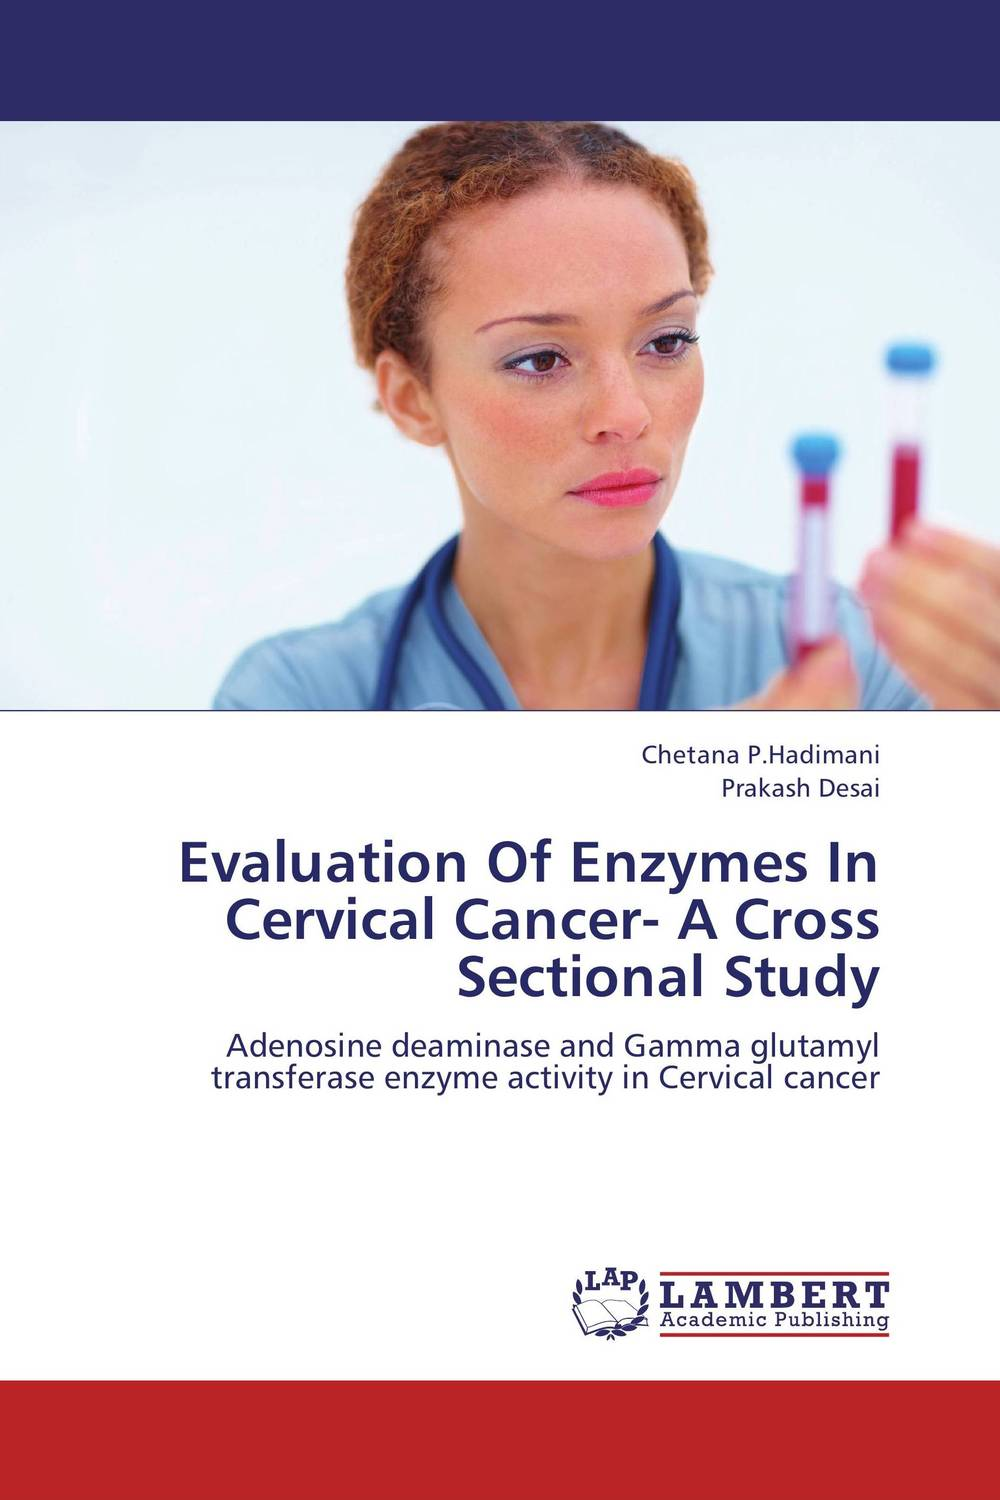 Evaluation Of Enzymes In Cervical Cancer- A Cross Sectional Study prognostic markers and cancer